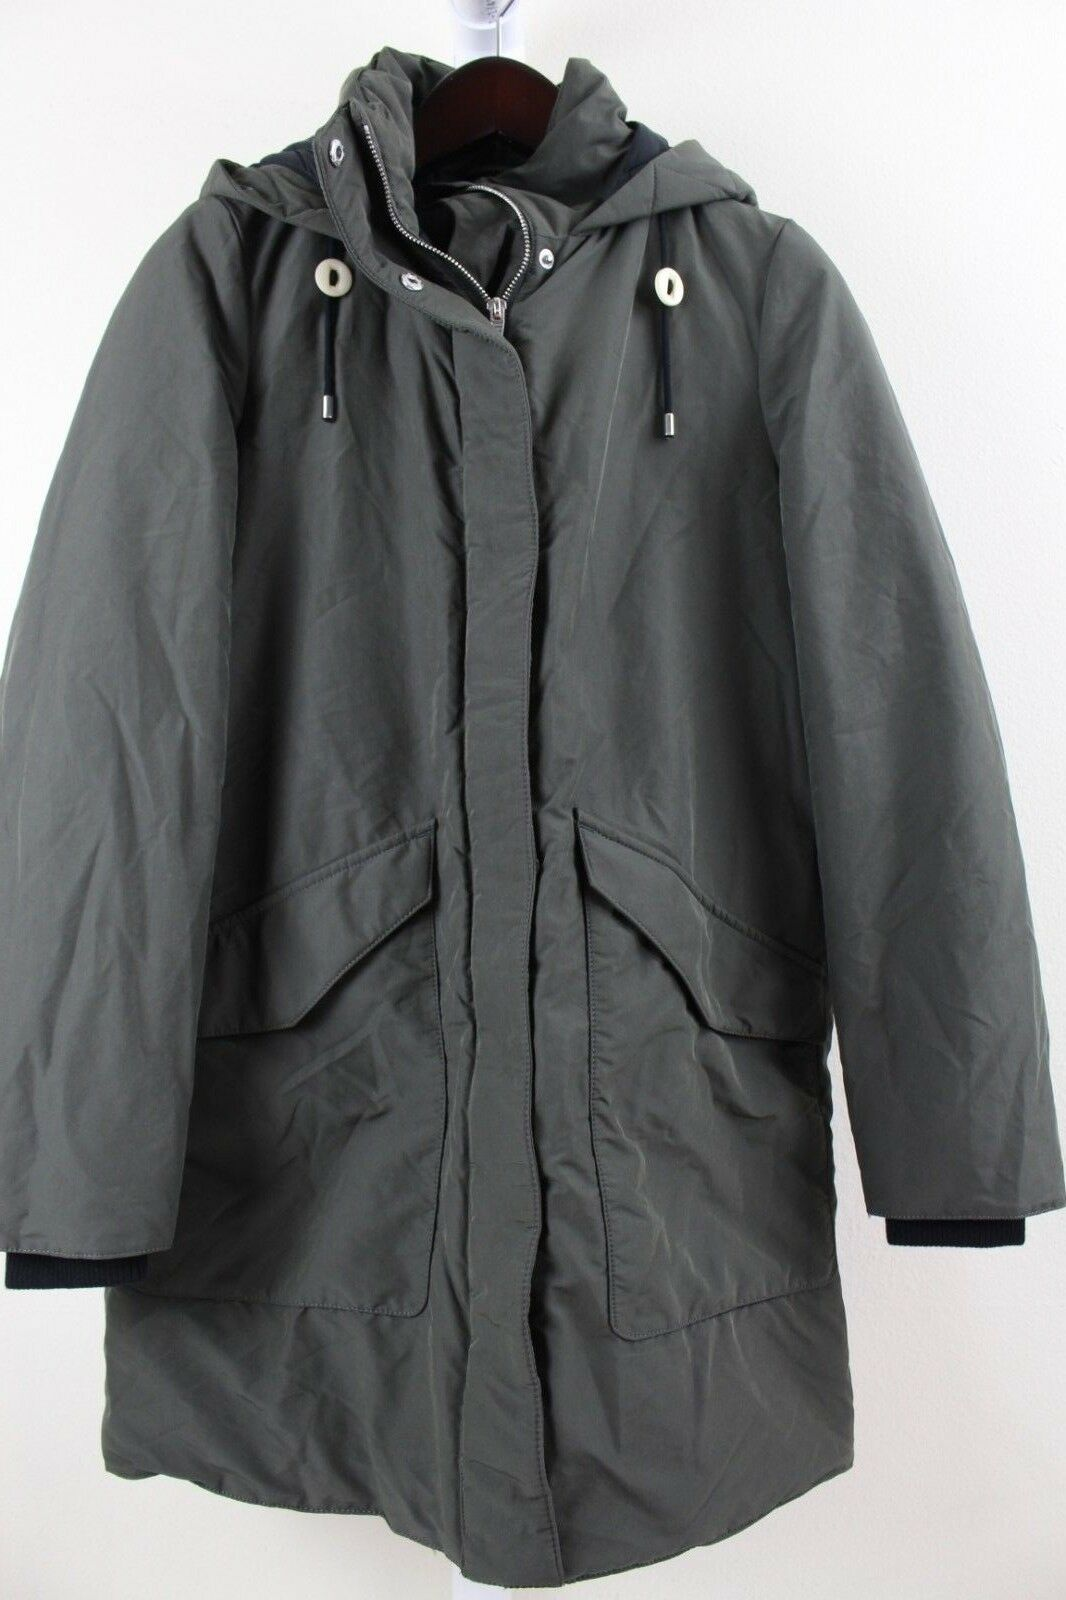 Zara Trafaluc 100% Polyester Hunter Green Lined & Filled Hooded Raincoat Size XS